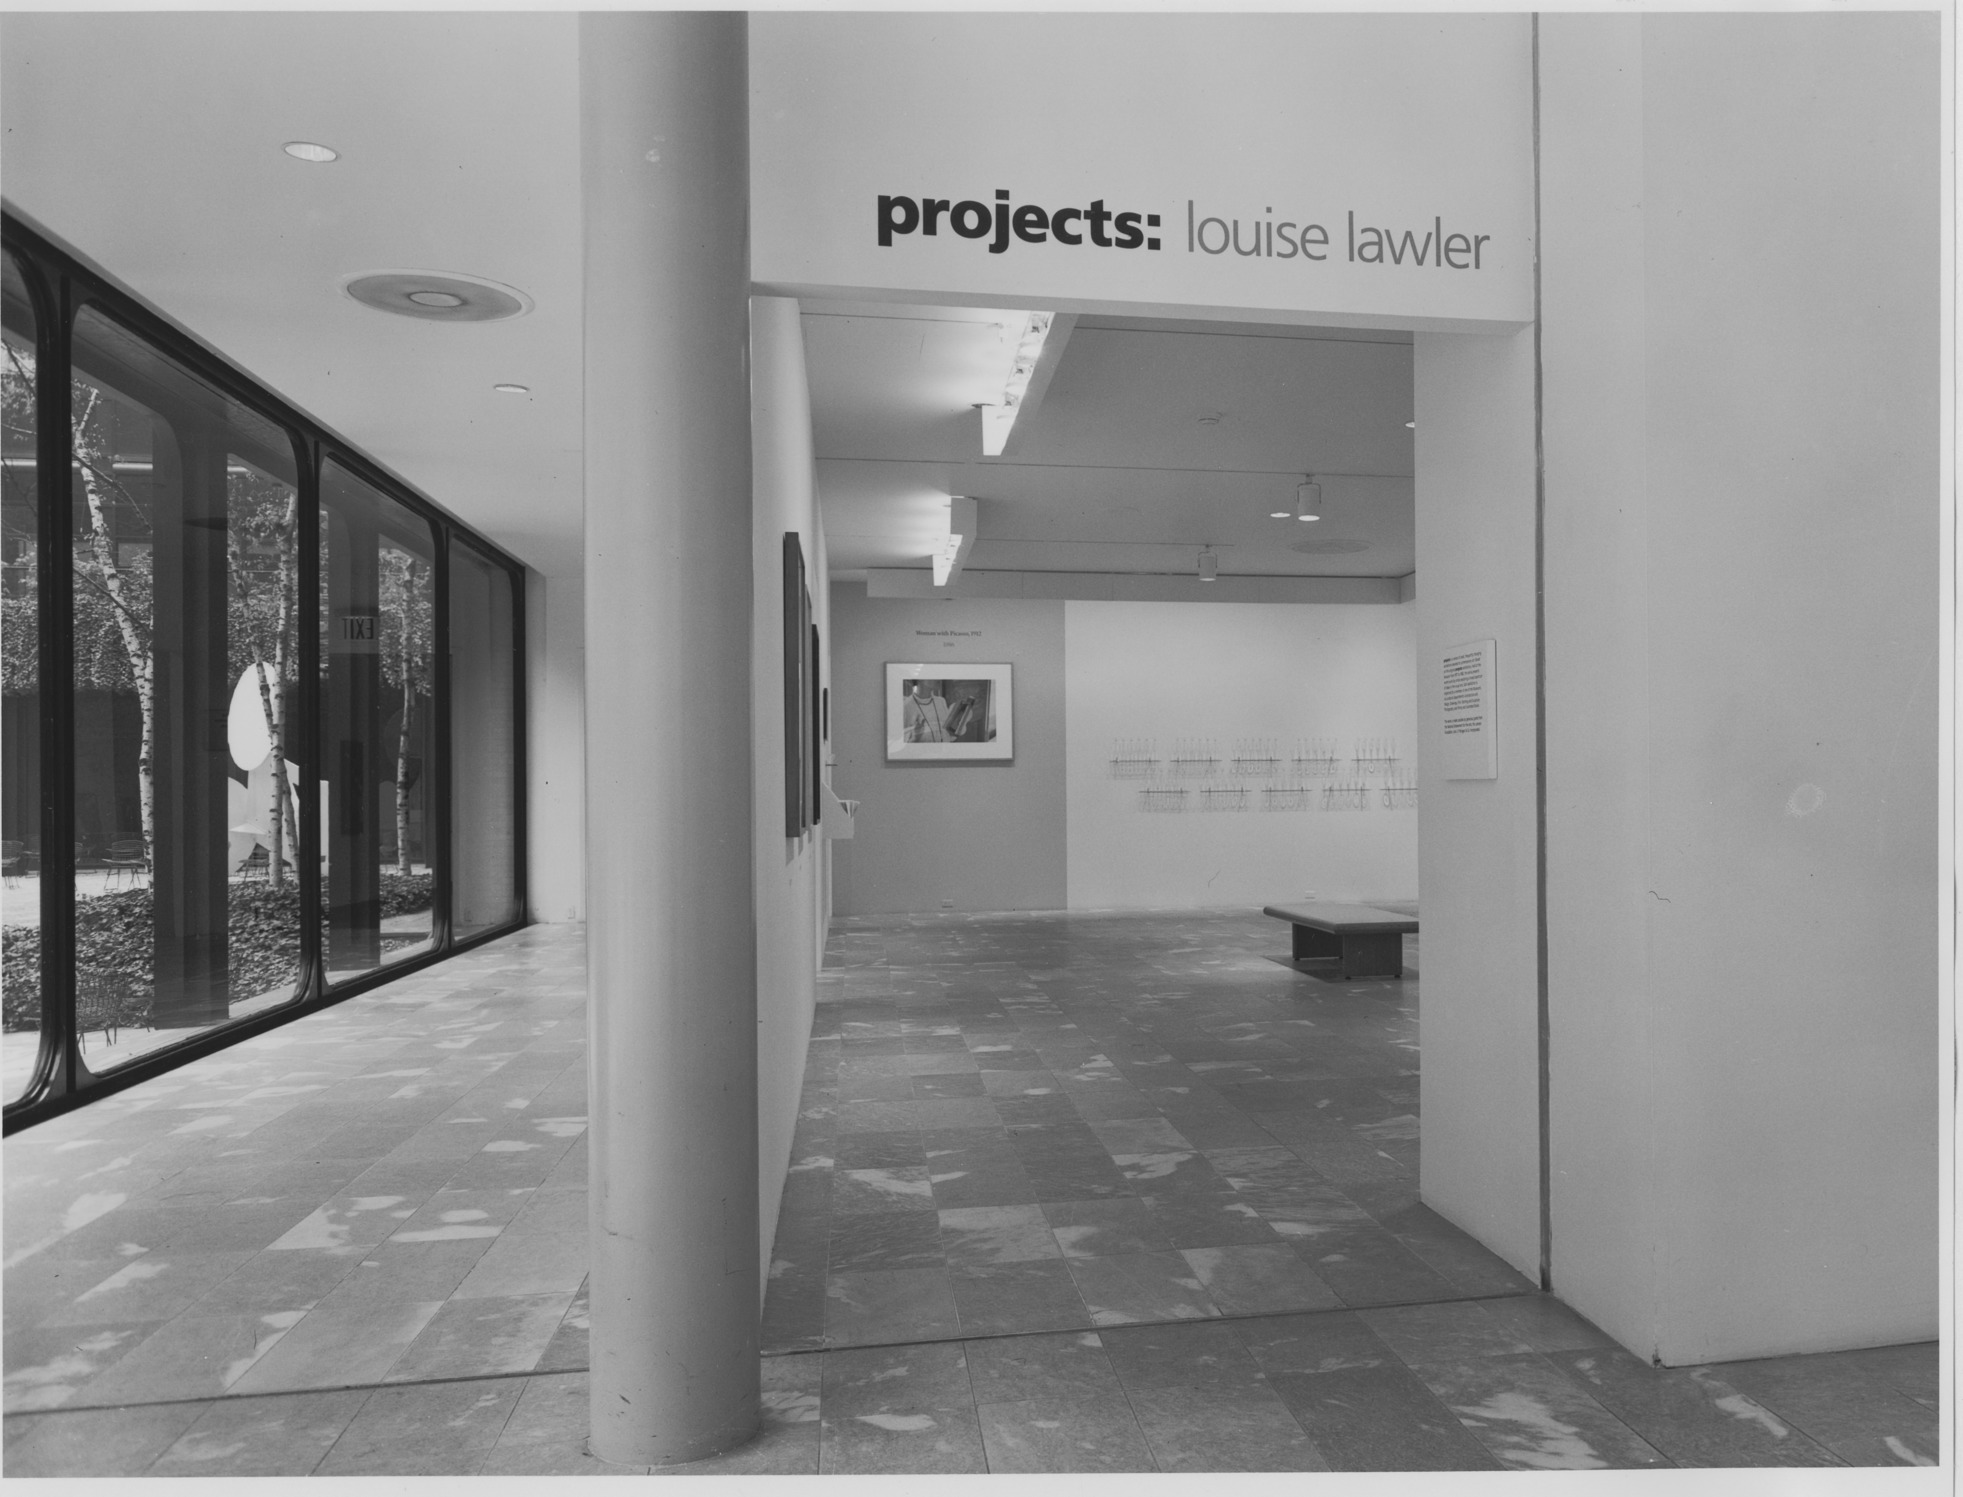 projects 9 louise lawler moma